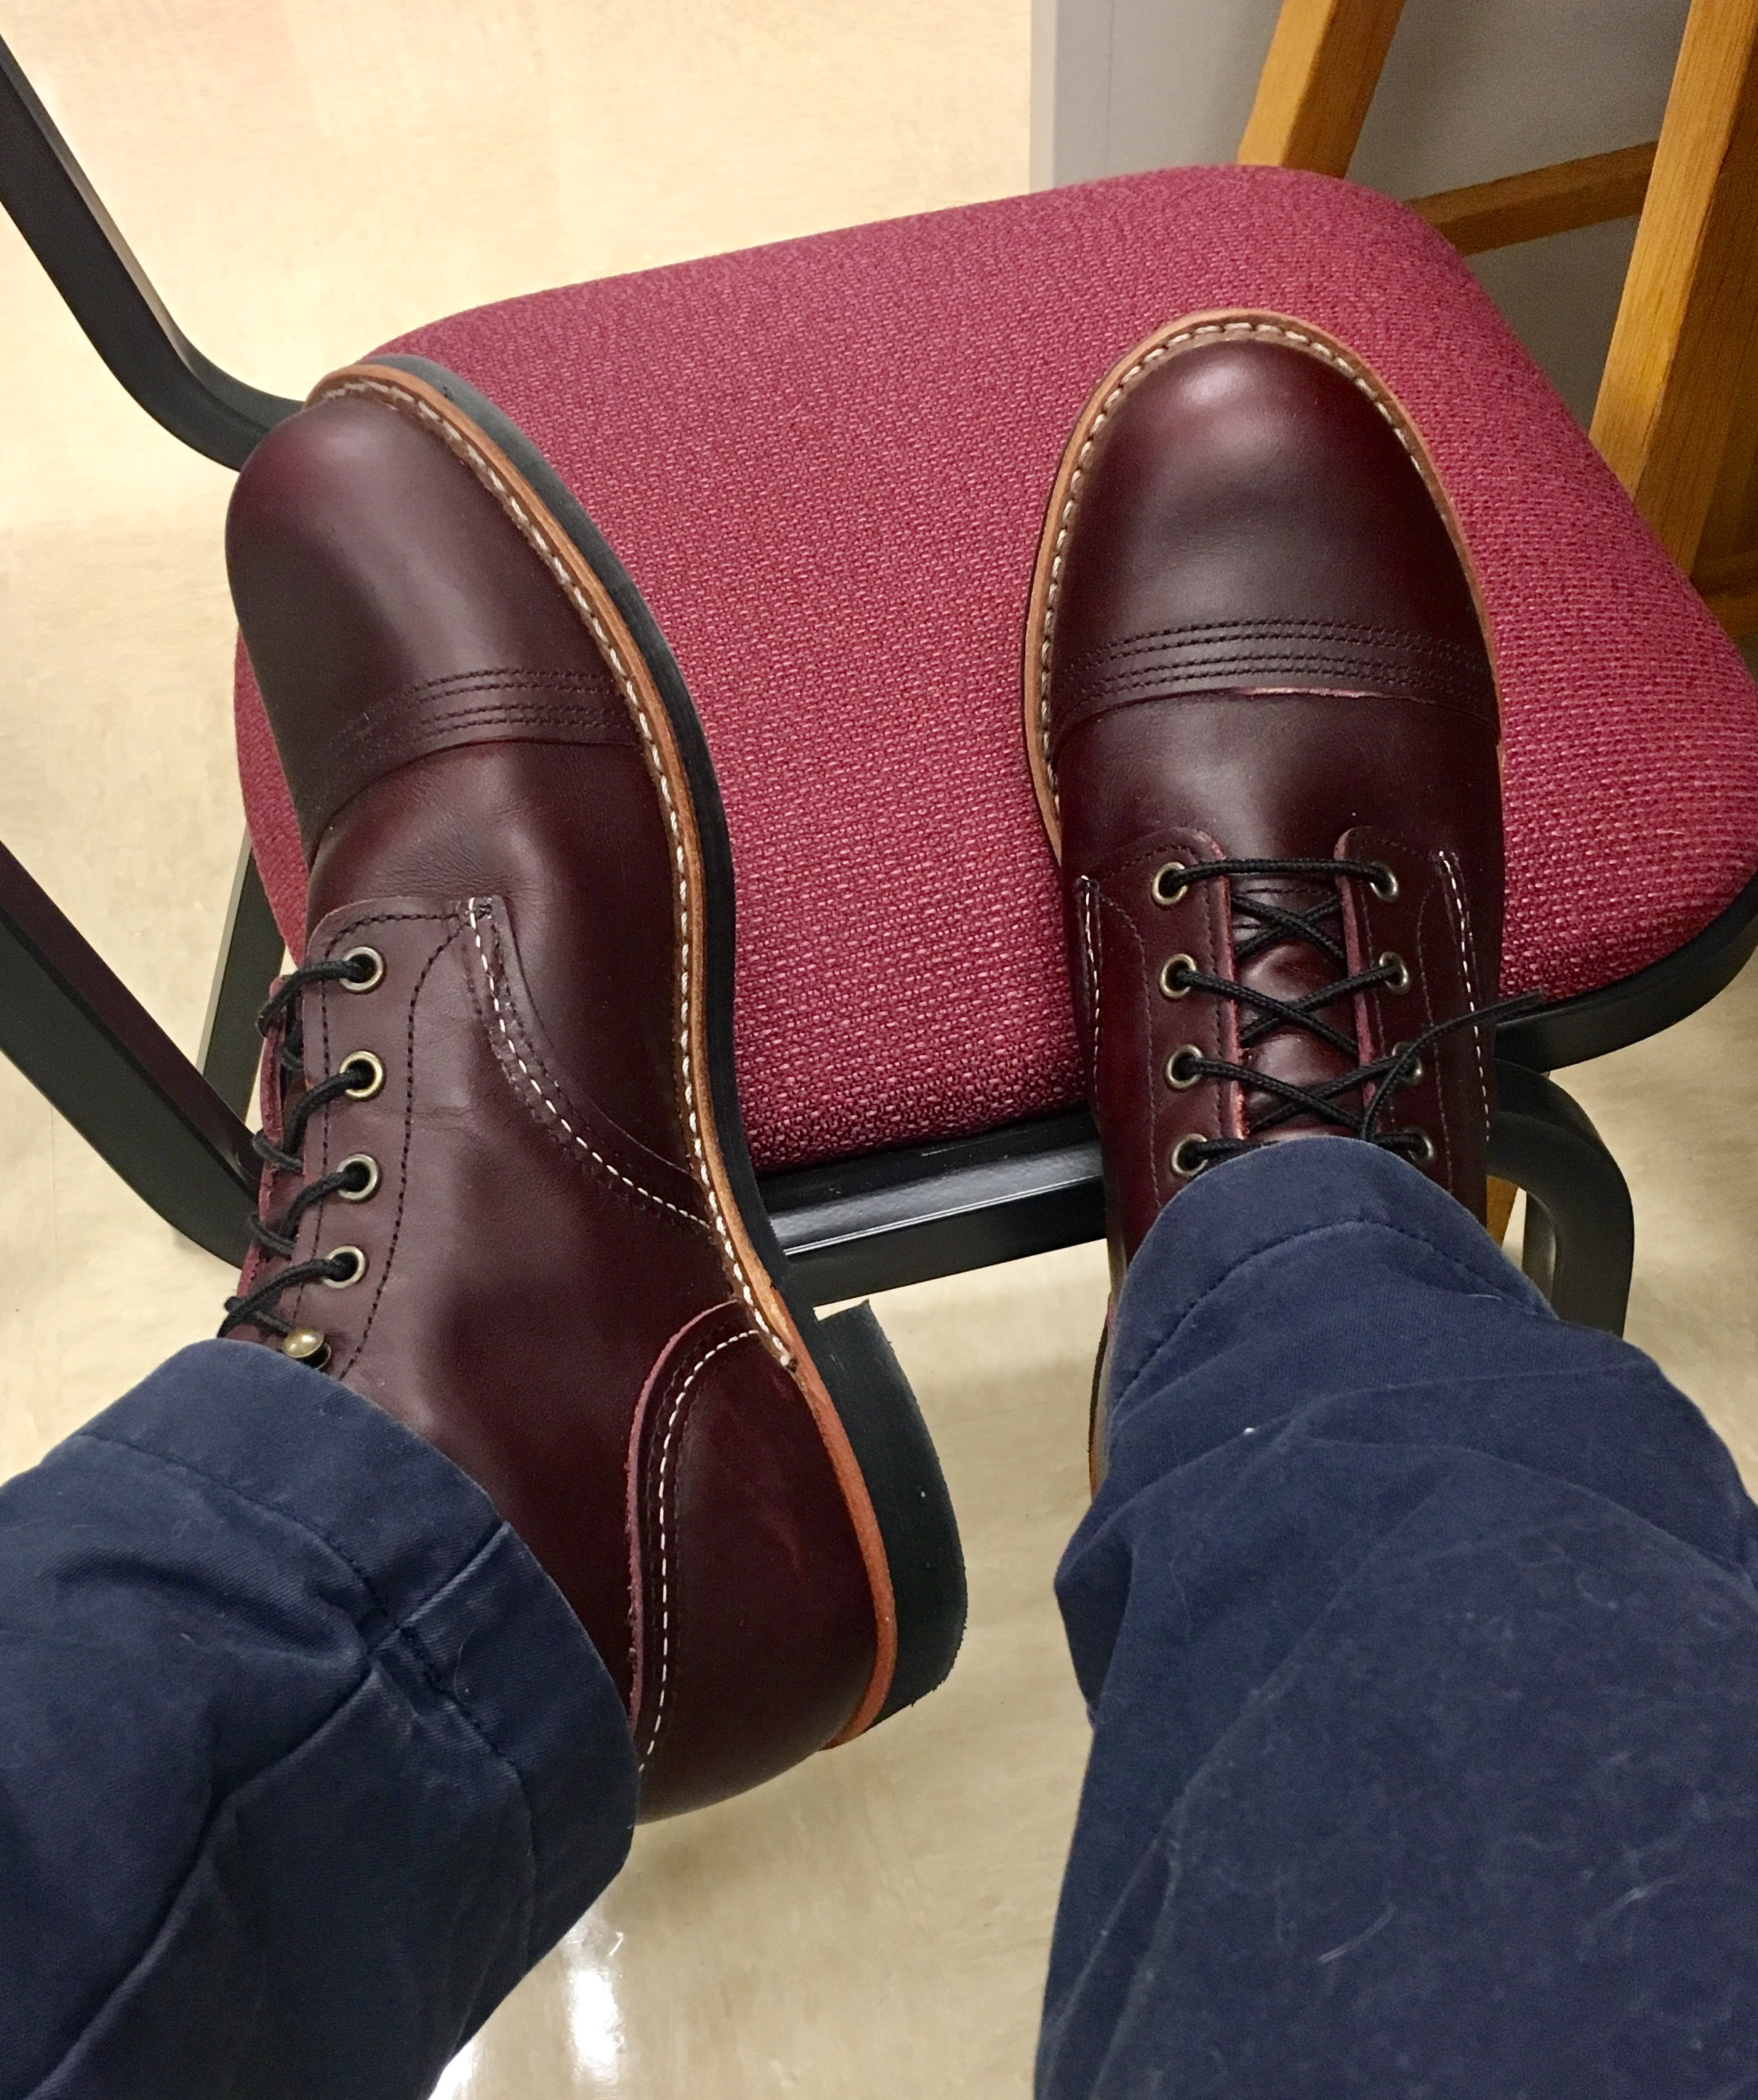 c474f0b3948 Red Wing Iron Ranger Boots - what's the dilly yo? | Page 79 | Styleforum